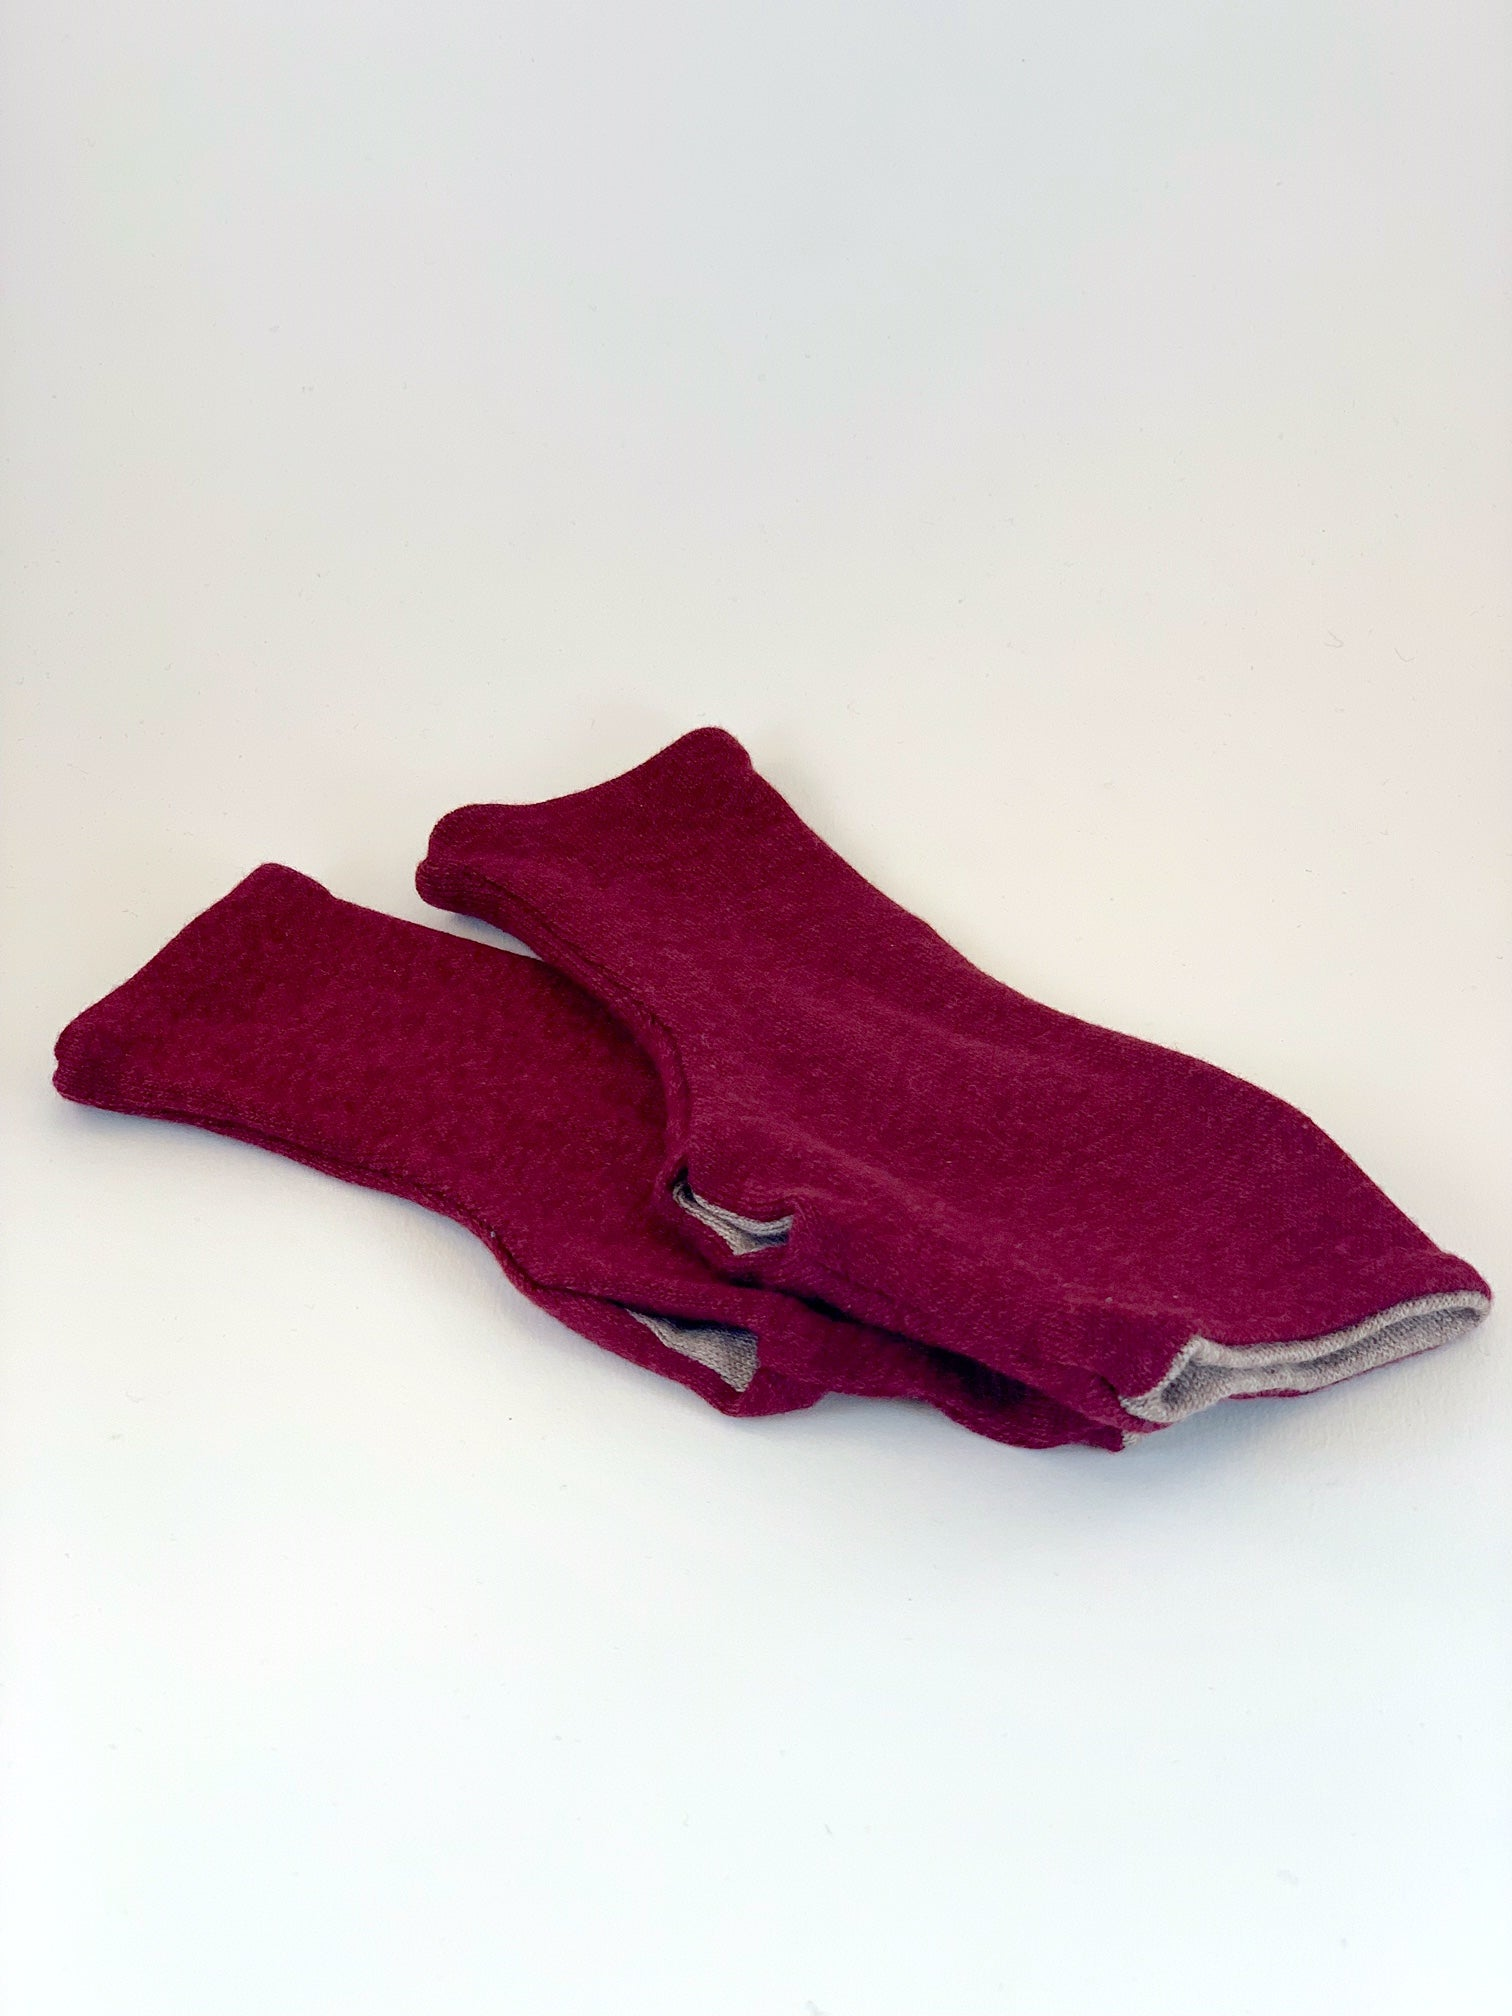 One Size Reversible Sweater Fingerless Gloves in Soft Double Layer